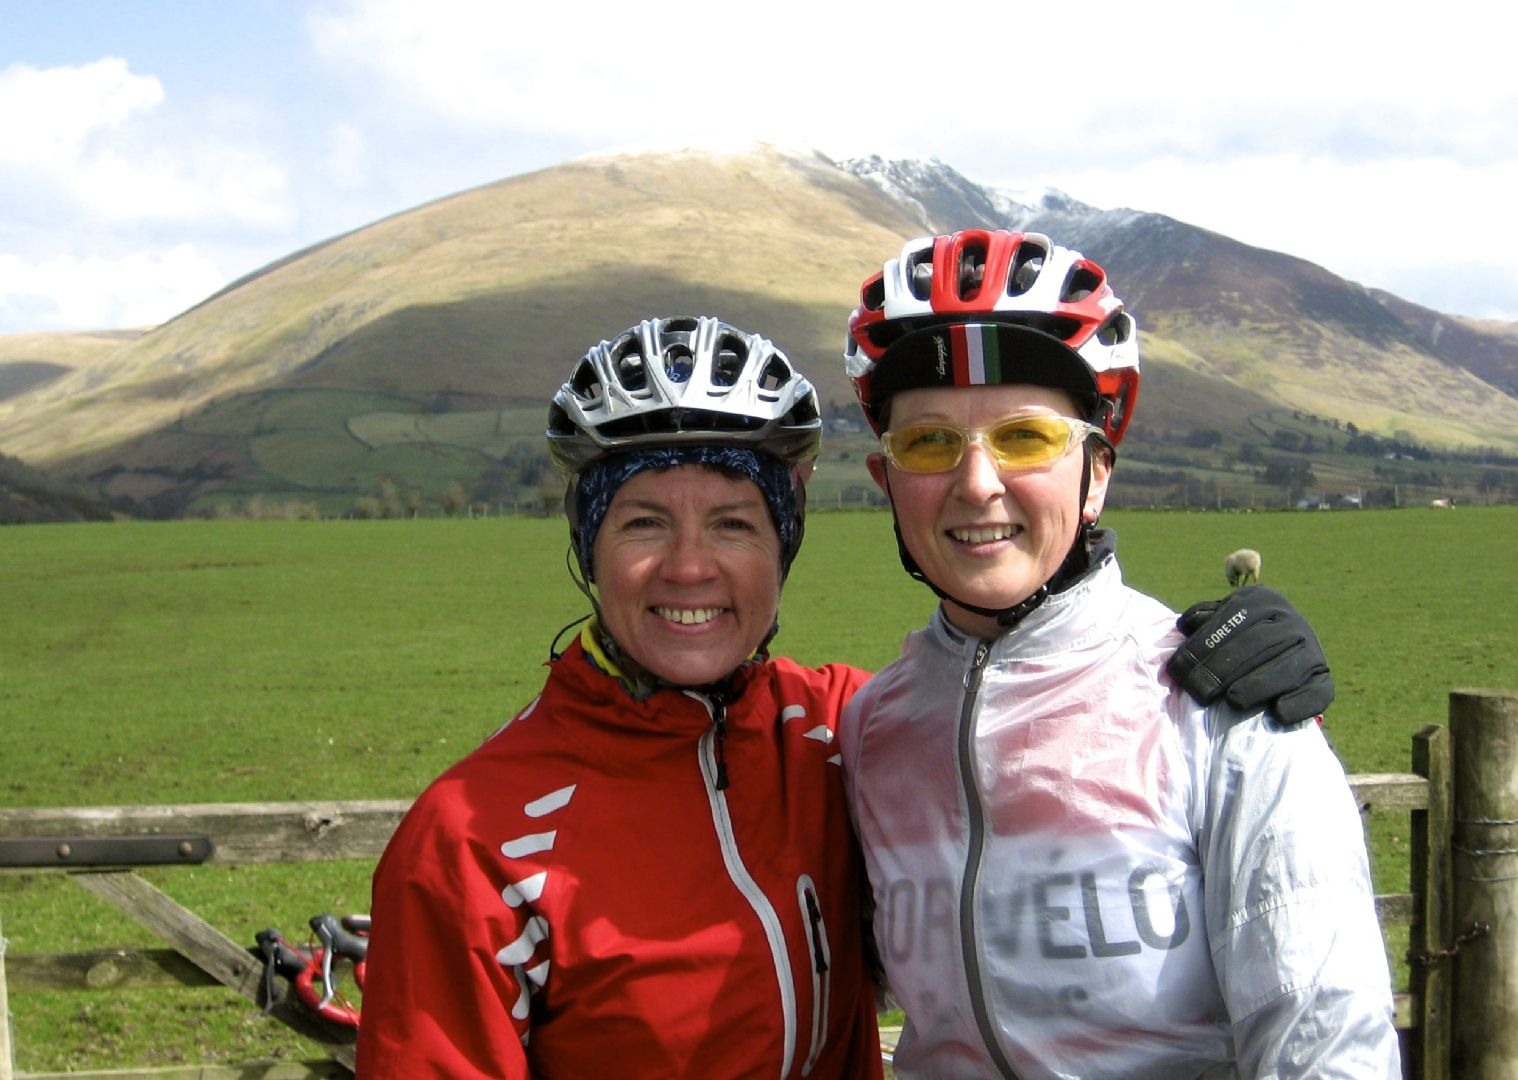 _Staff.178.9767.jpg - UK - North Lake District Explorer - Guided Road Cycling Weekend - Road Cycling